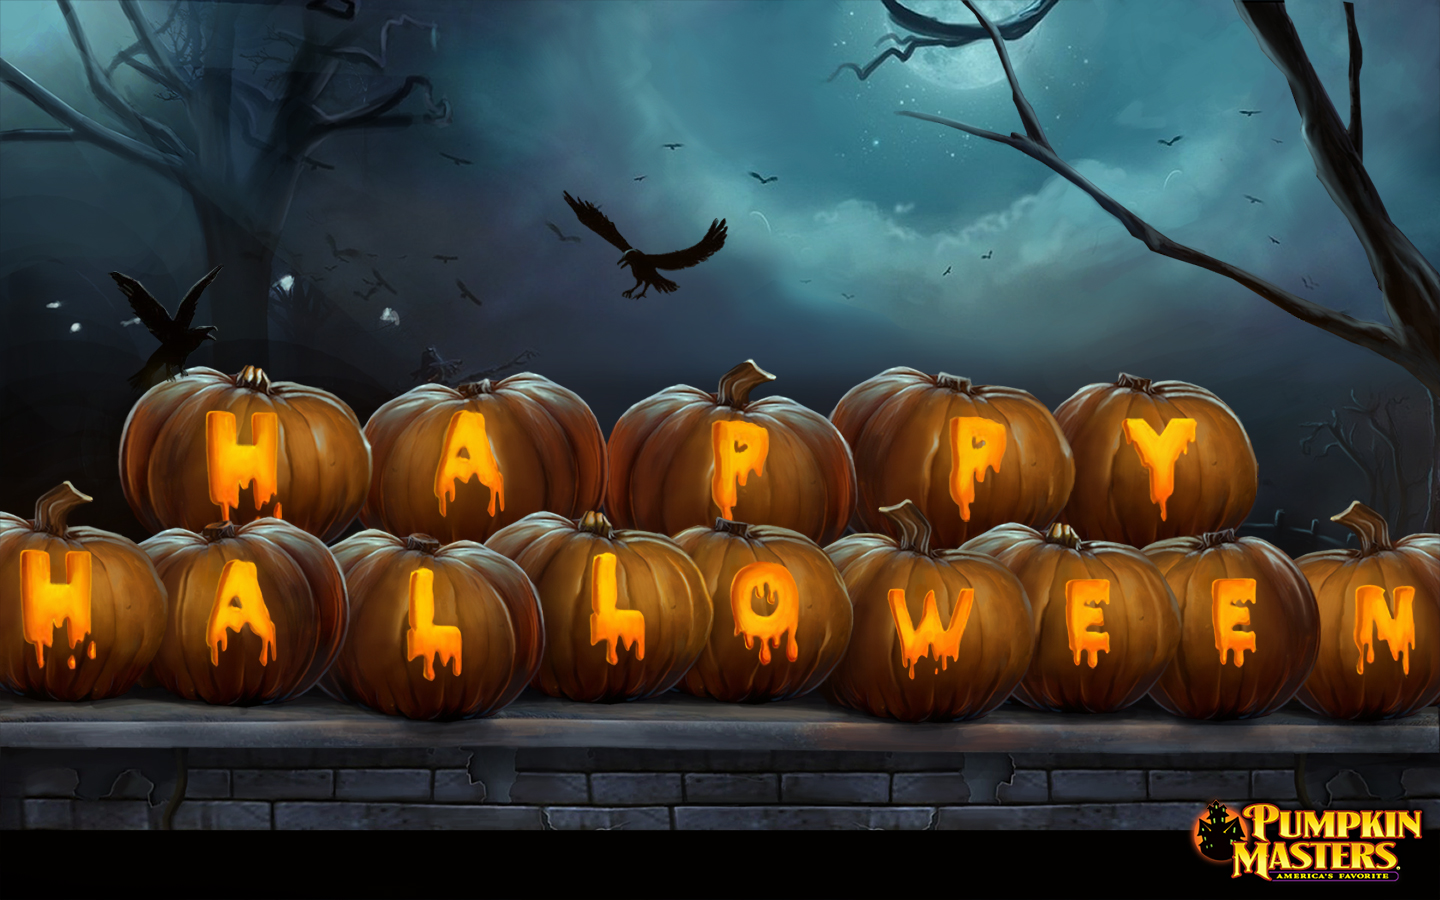 Free Halloween Desktop Wallpapers | Halloween Carving Designs ...